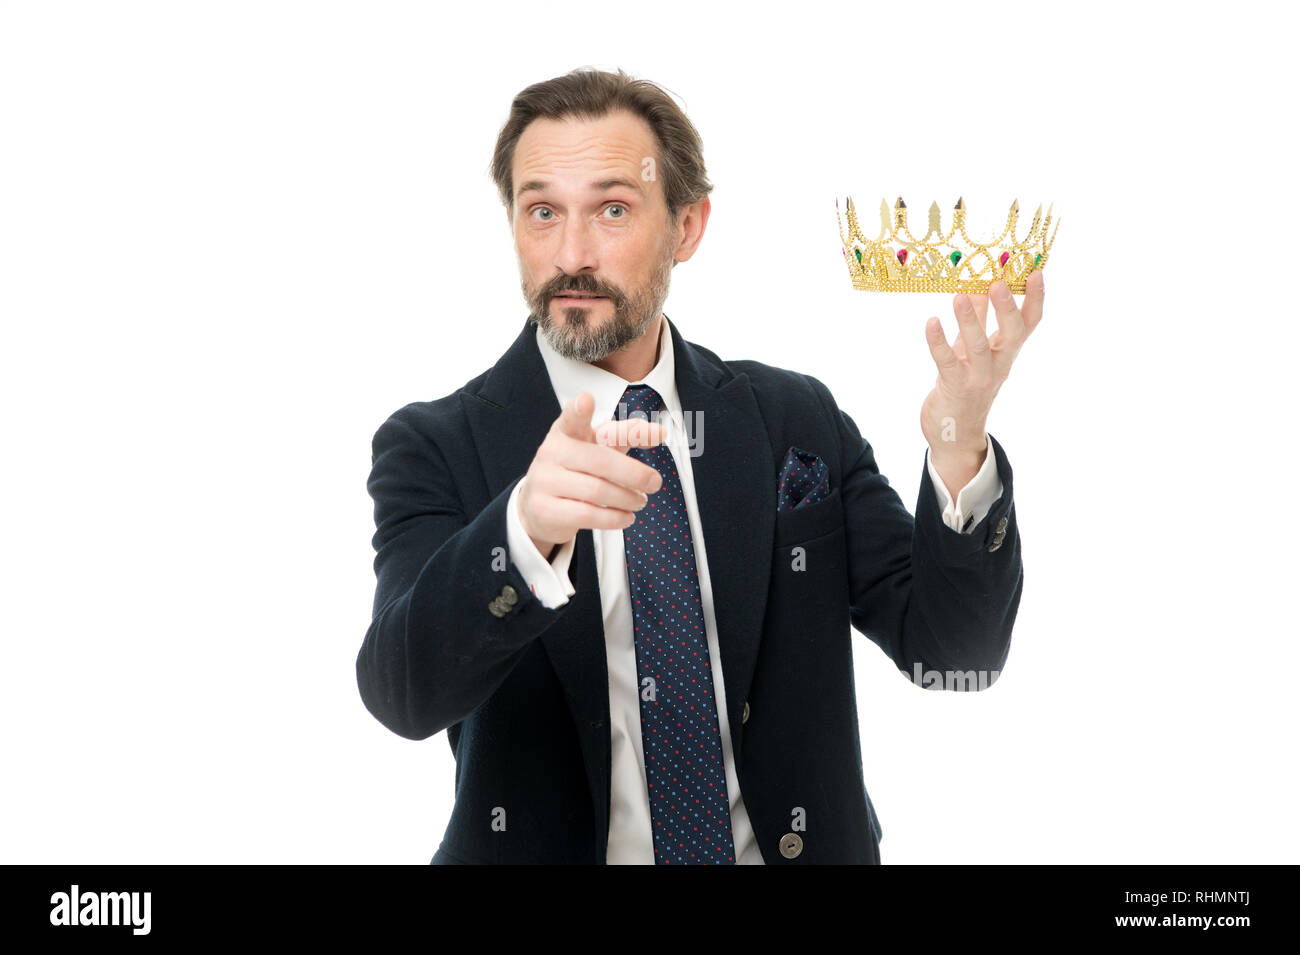 Enormous privilege. Become king ceremony. King attribute. Become next king. Monarchy family traditions. Man nature bearded guy in suit hold golden crown symbol of monarchy. Direct line to throne. - Stock Image